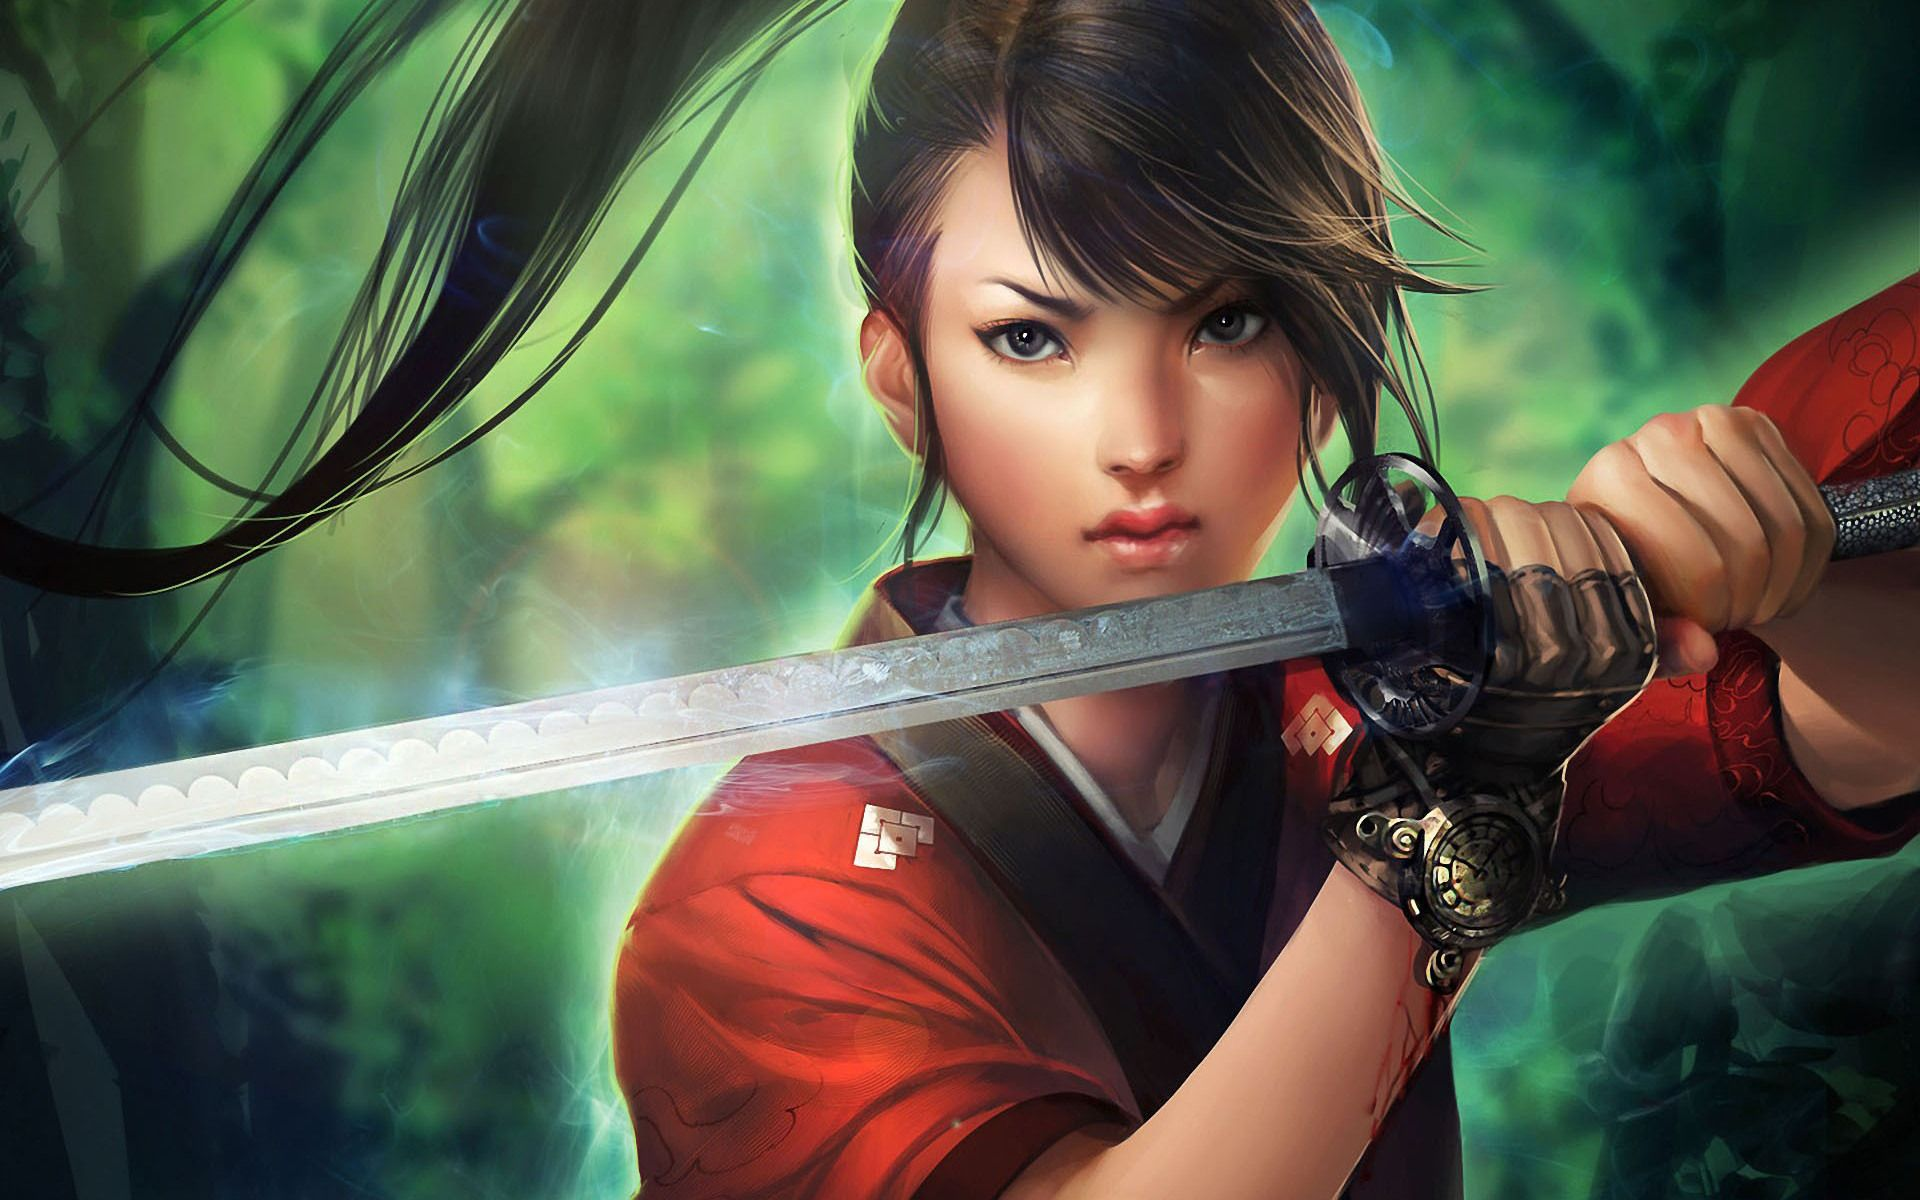 Swordswoman Warrior Woman Female Warrior Art Warriors Wallpaper